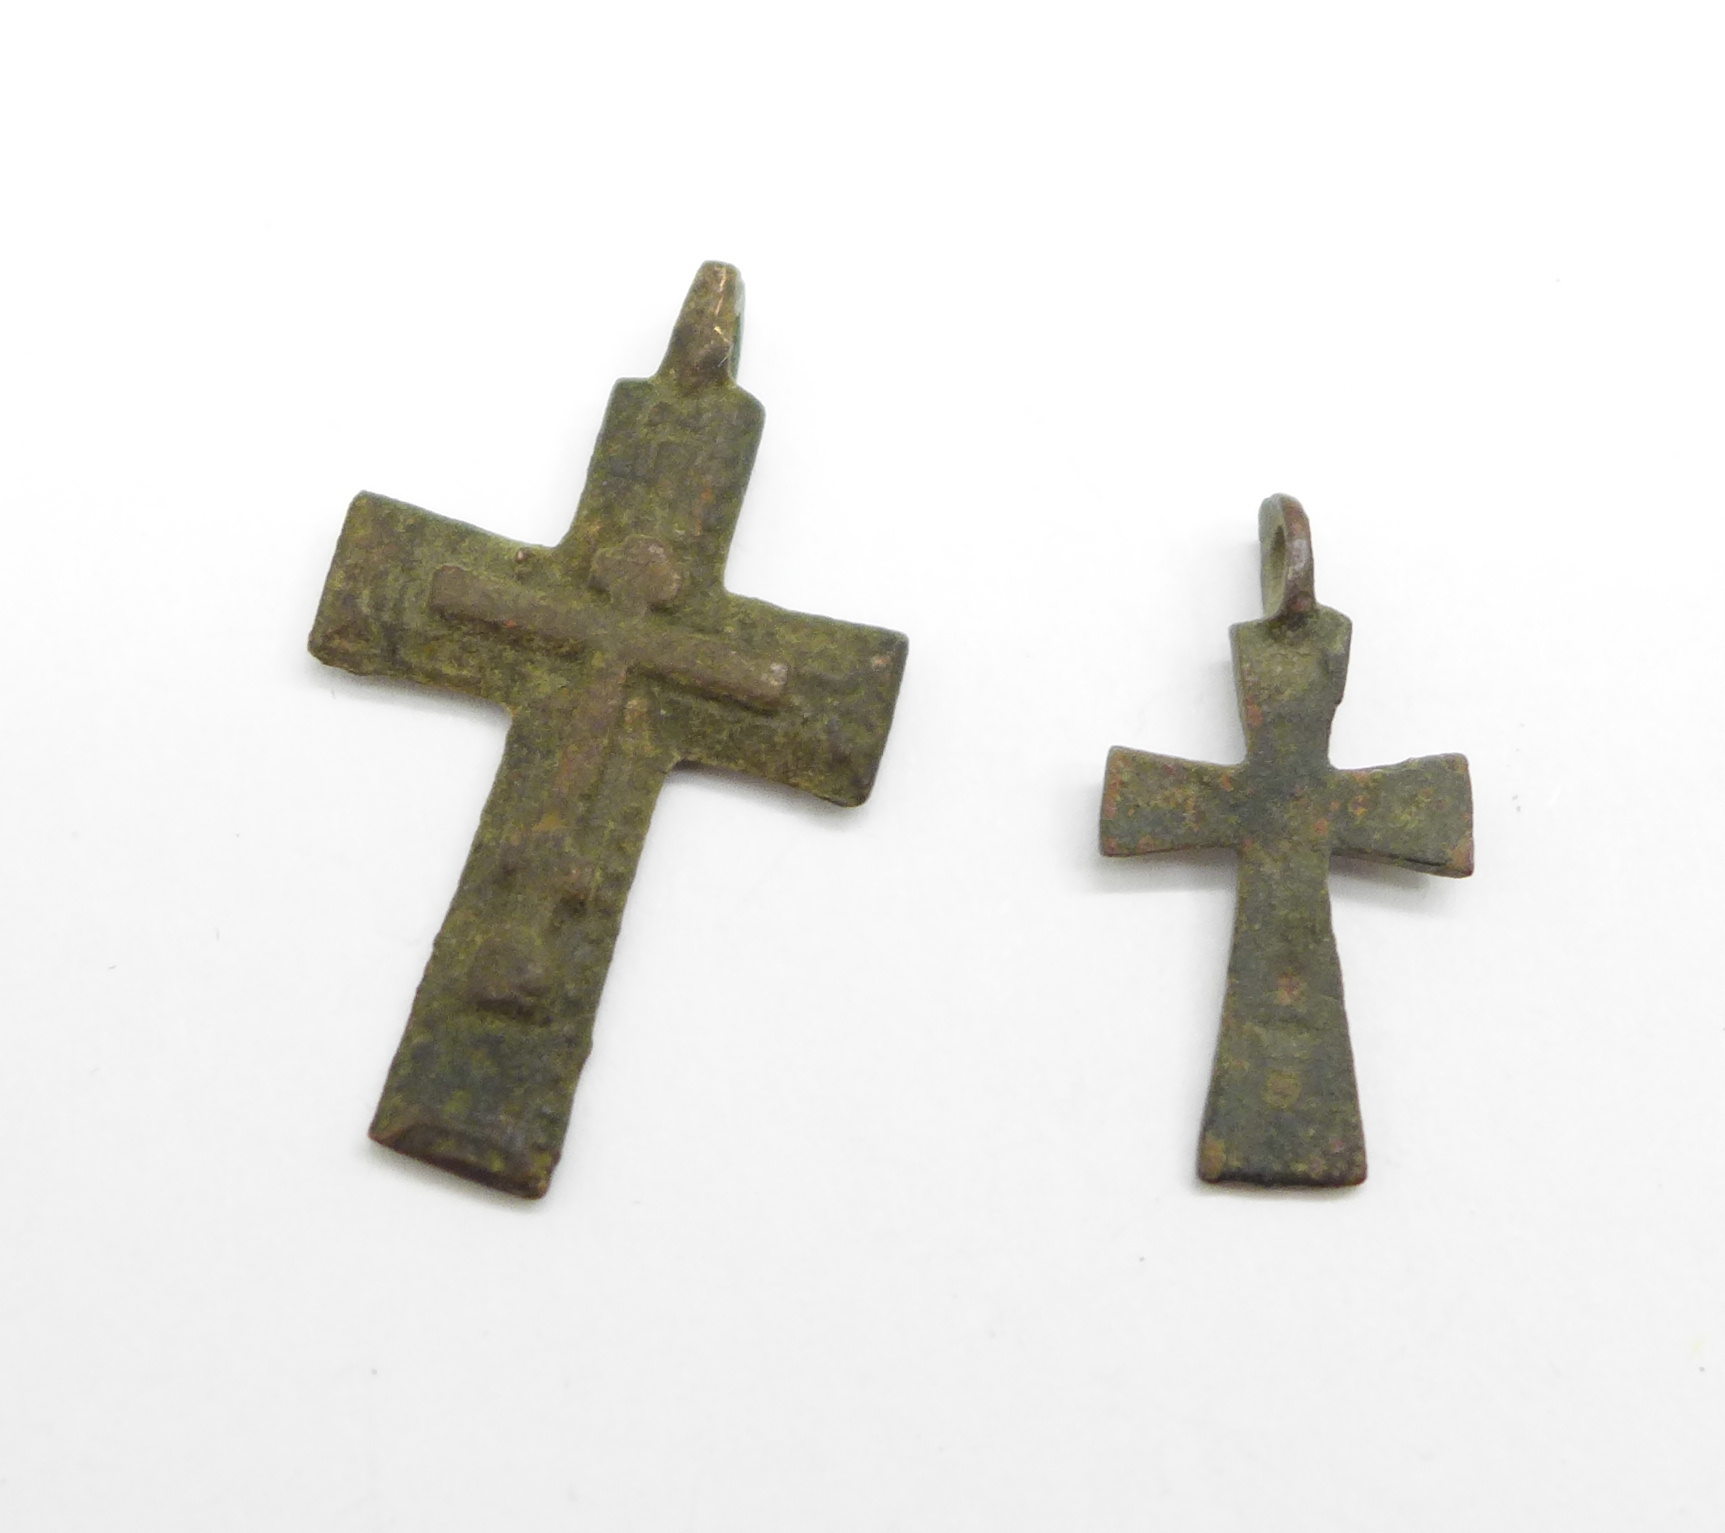 Two bronze Viking crosses, found in Russia - Image 2 of 2